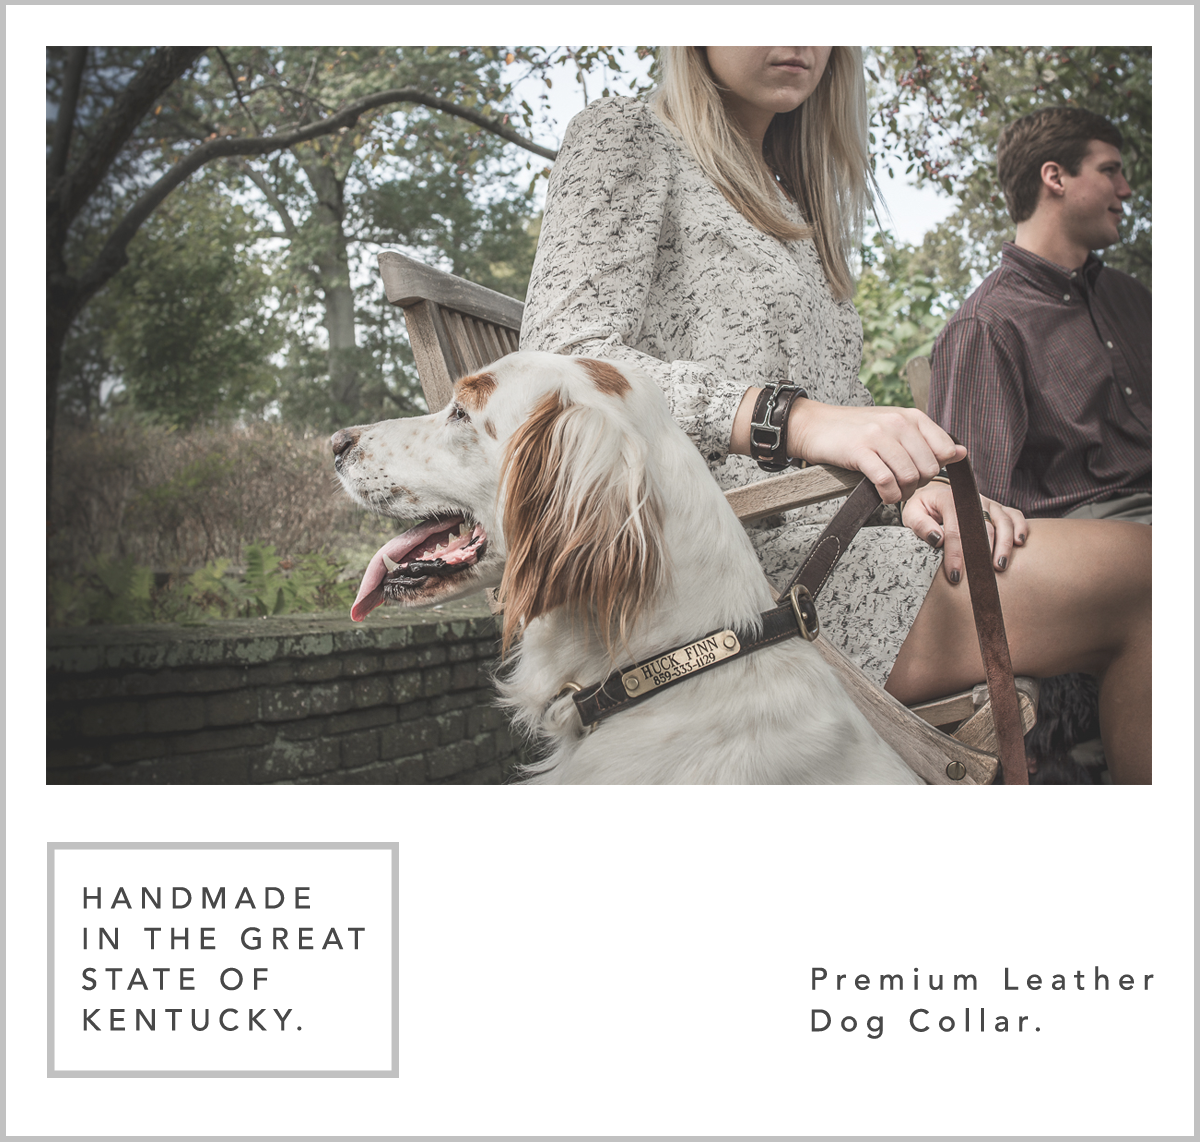 Product - Dog Collar.png